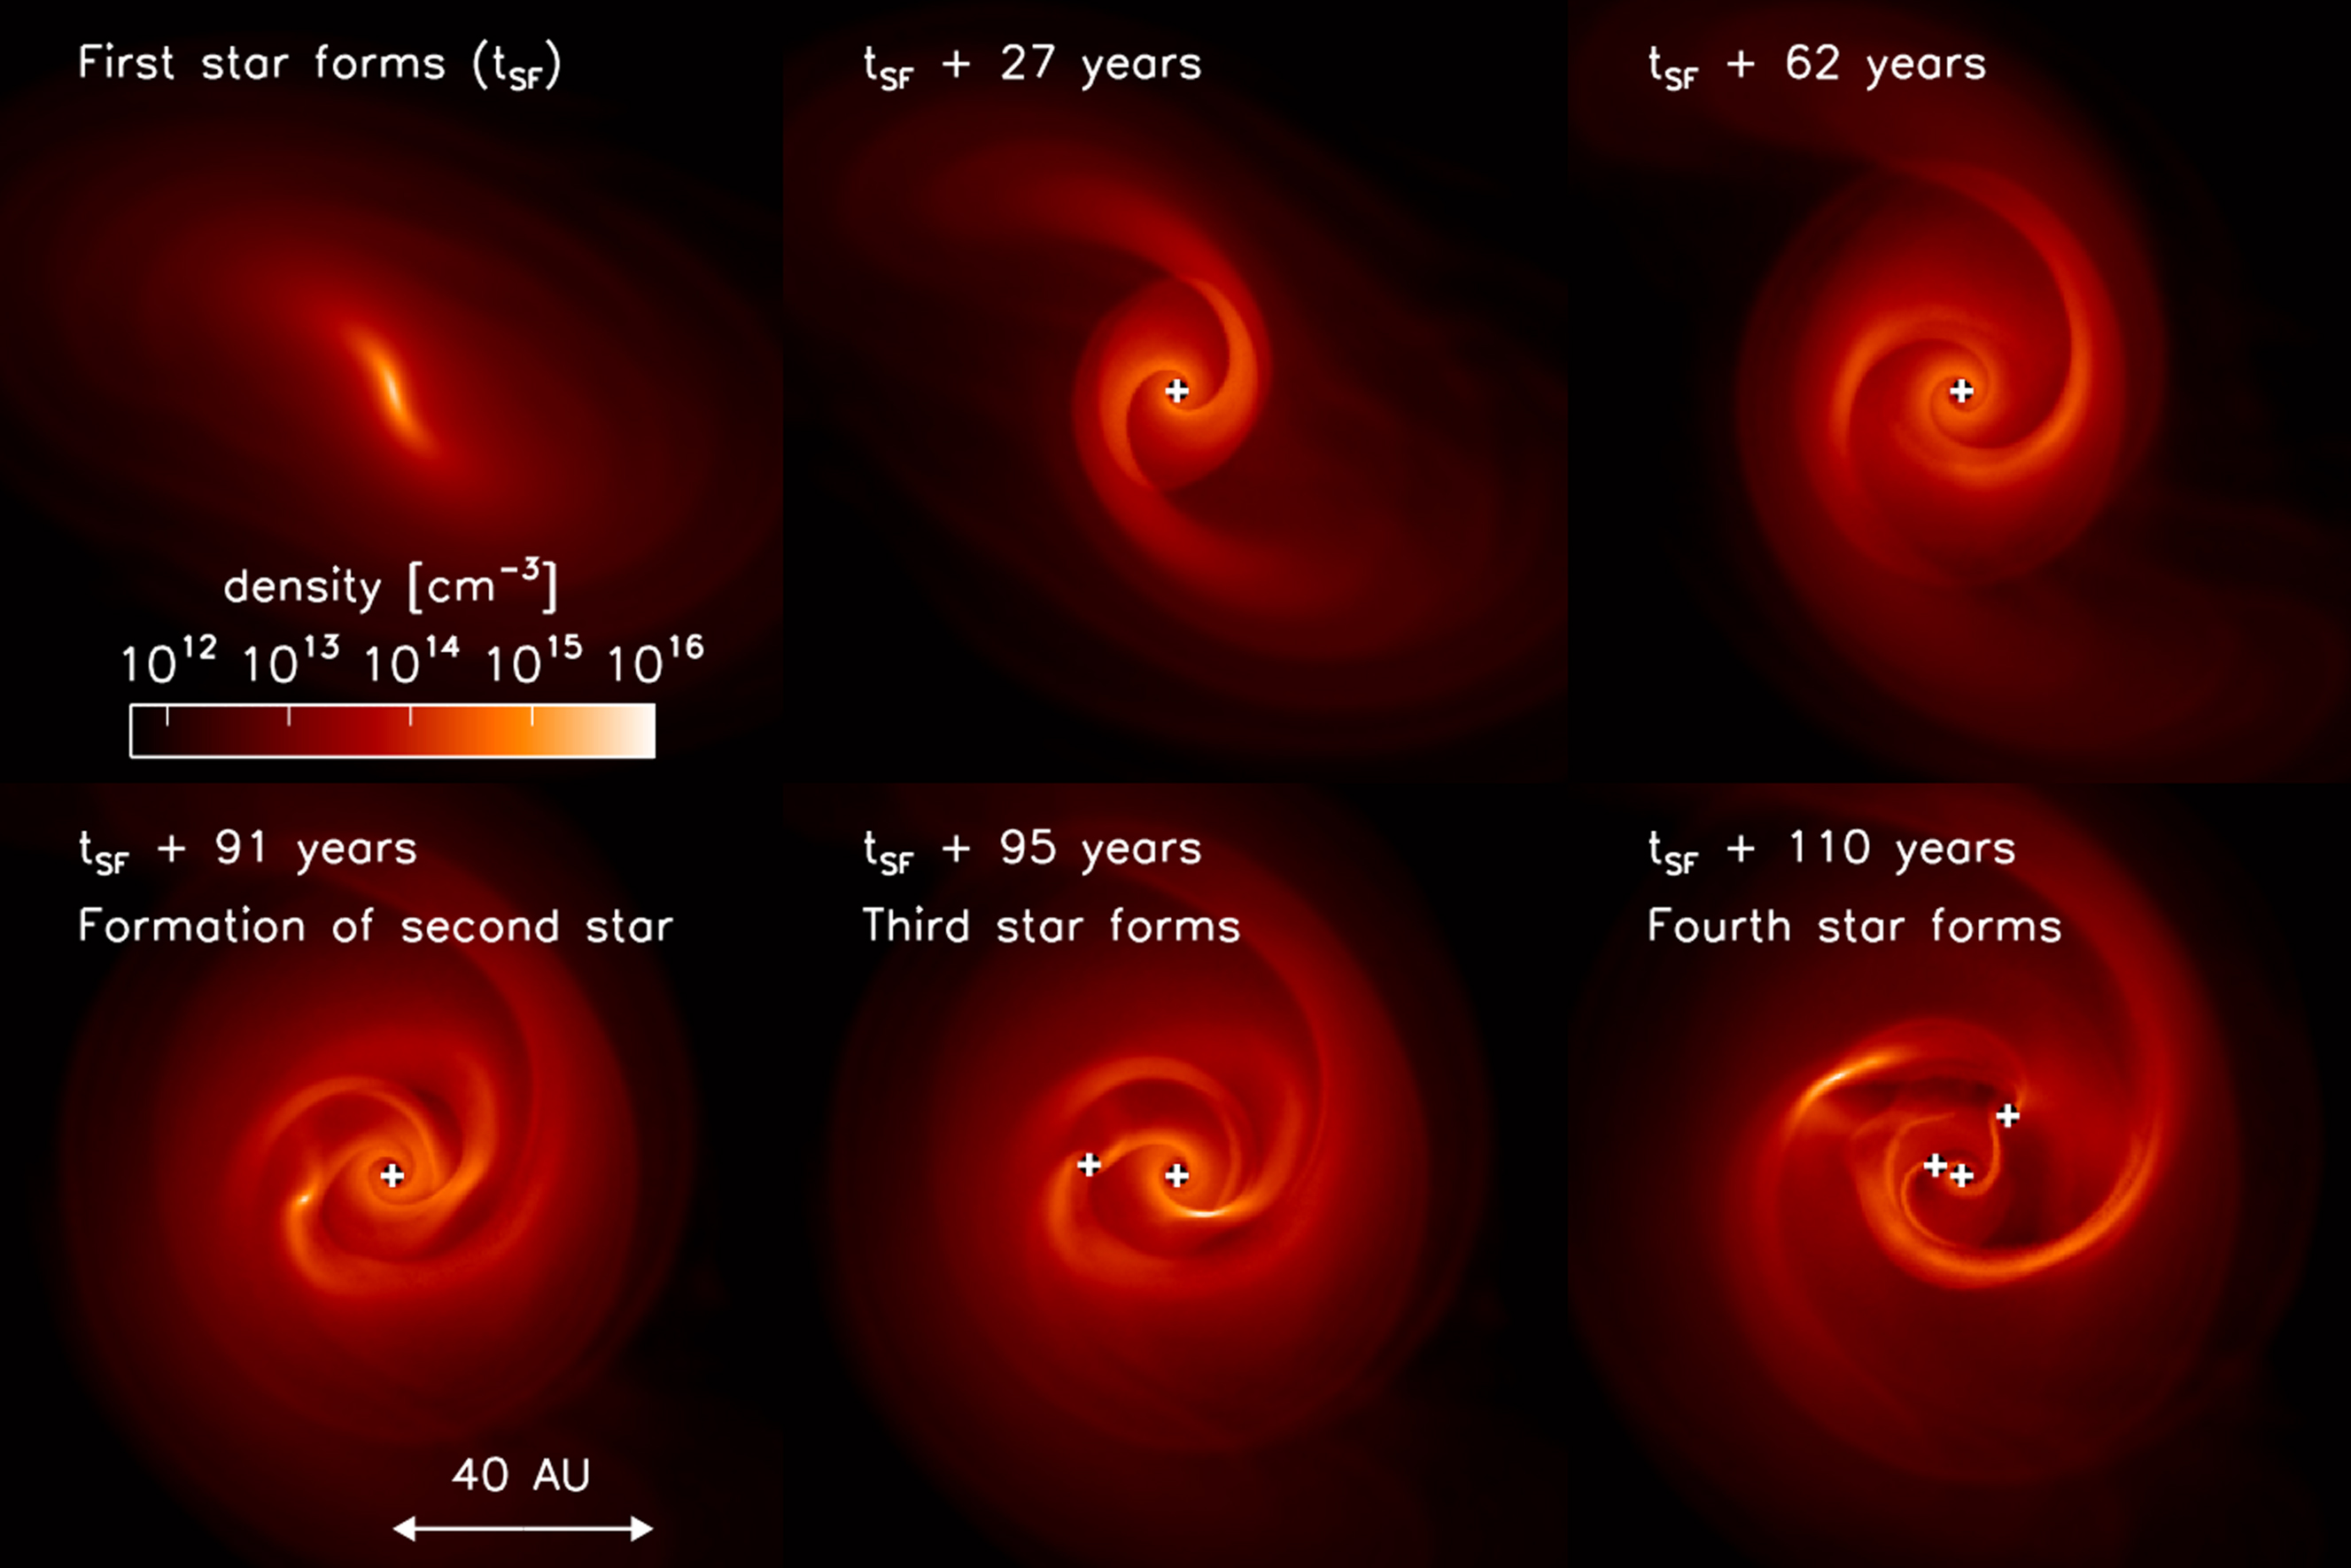 Time Sequence Of The Disk Evolution Around The First Star